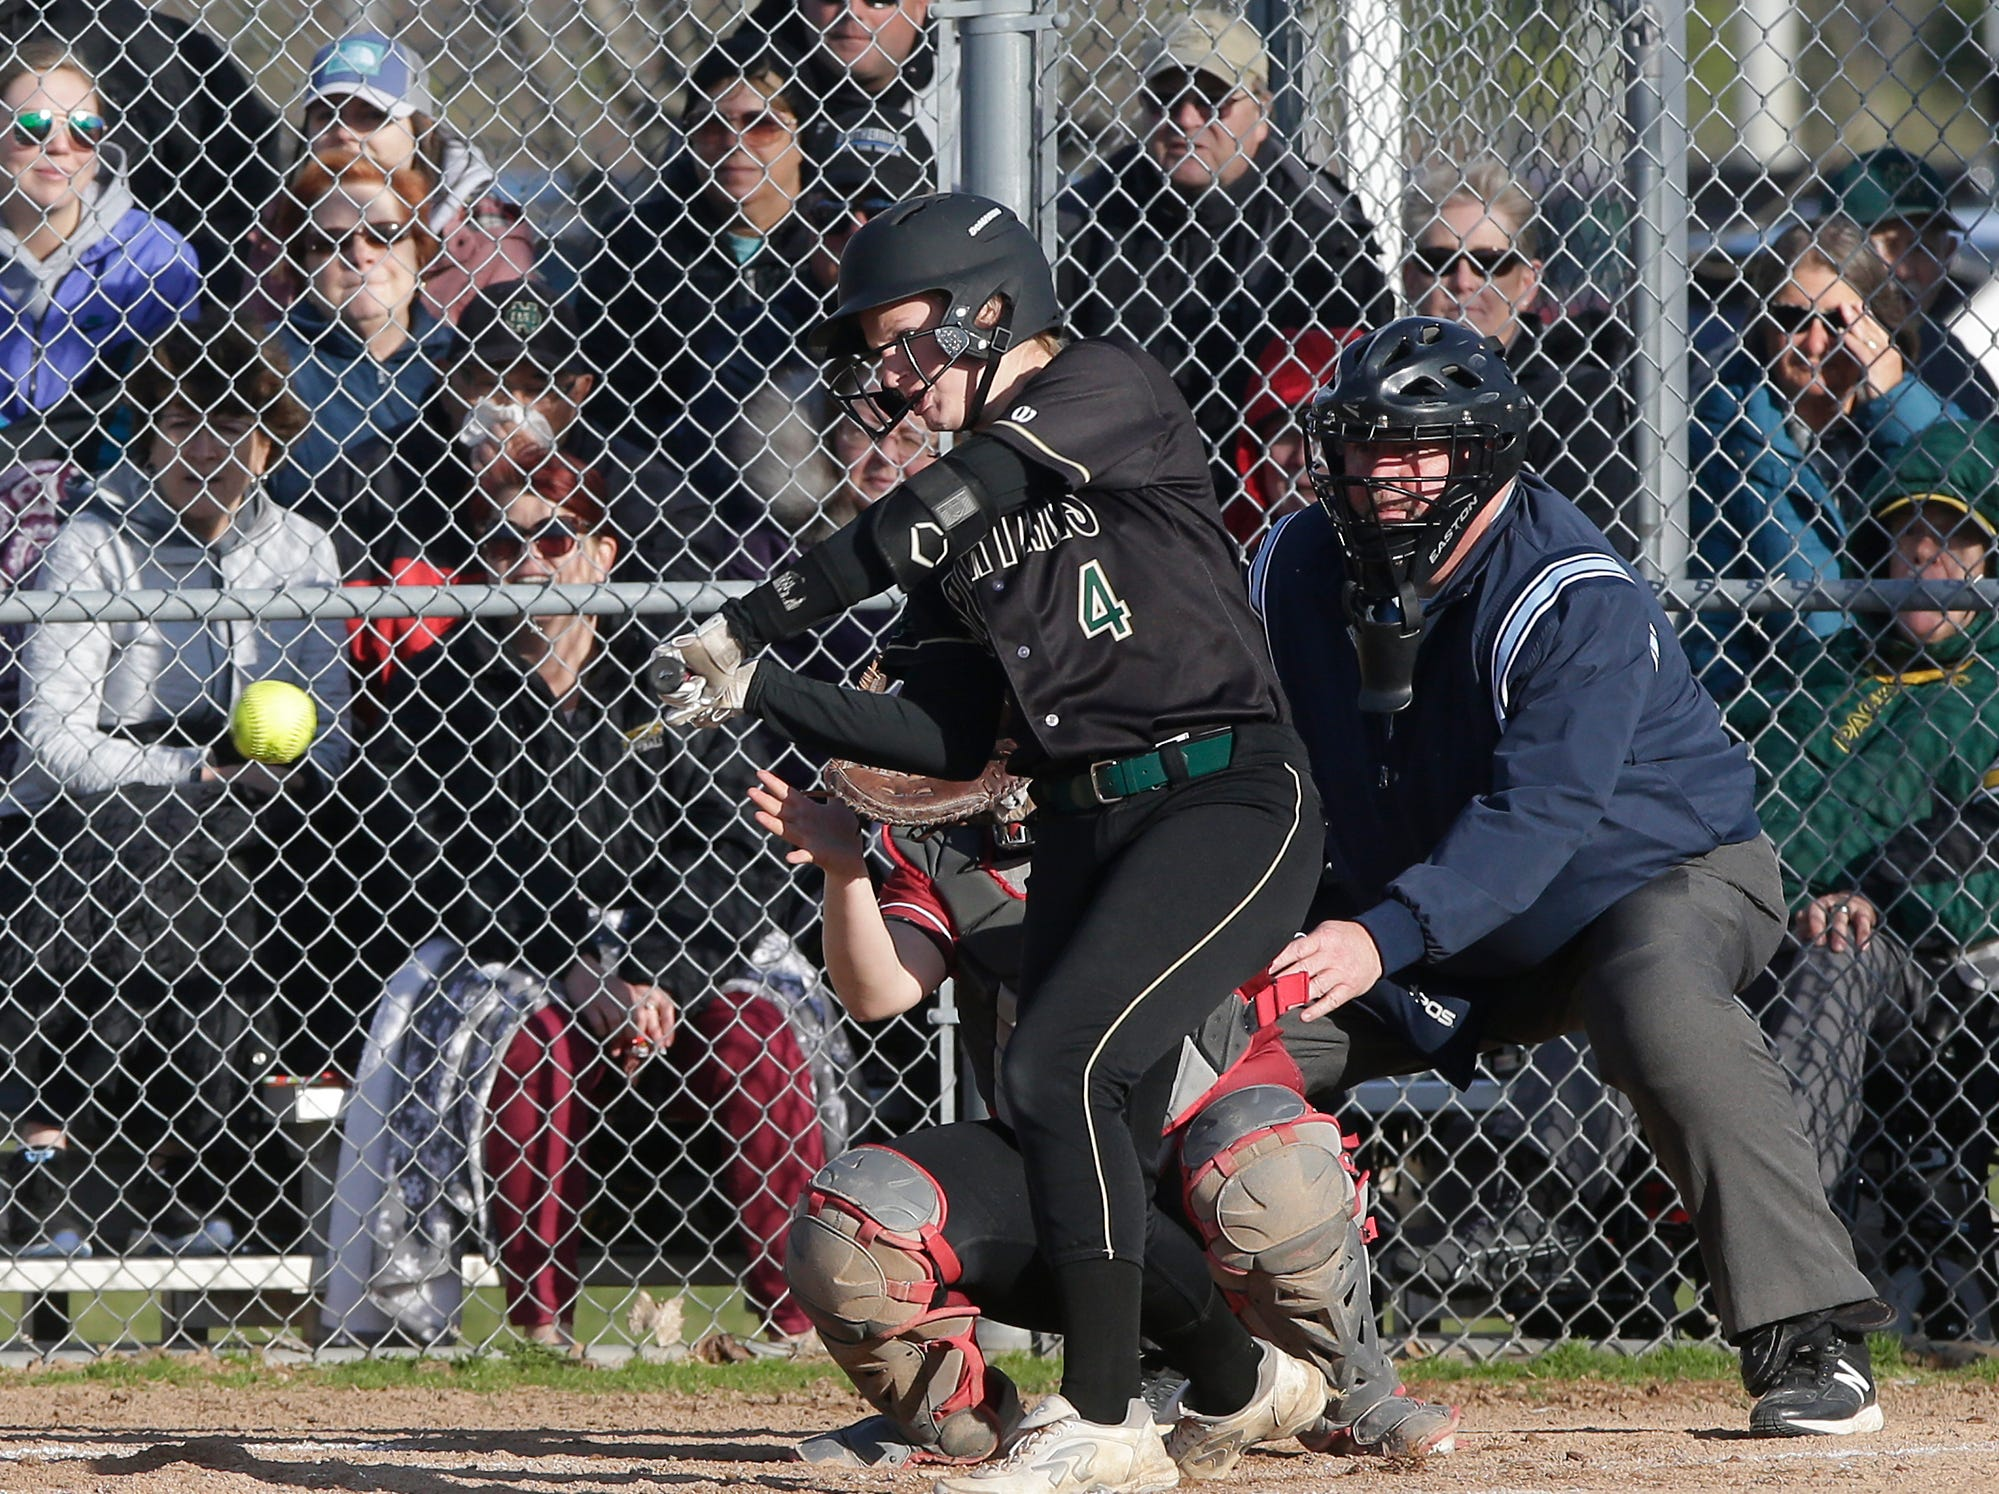 Oshkosh North High School softball's Noelle Frank swings at a pitch against Fond du Lac High School during their game Friday, April 26, 2019 in Fond du Lac, Wis. Doug Raflik/USA TODAY NETWORK-Wisconsin